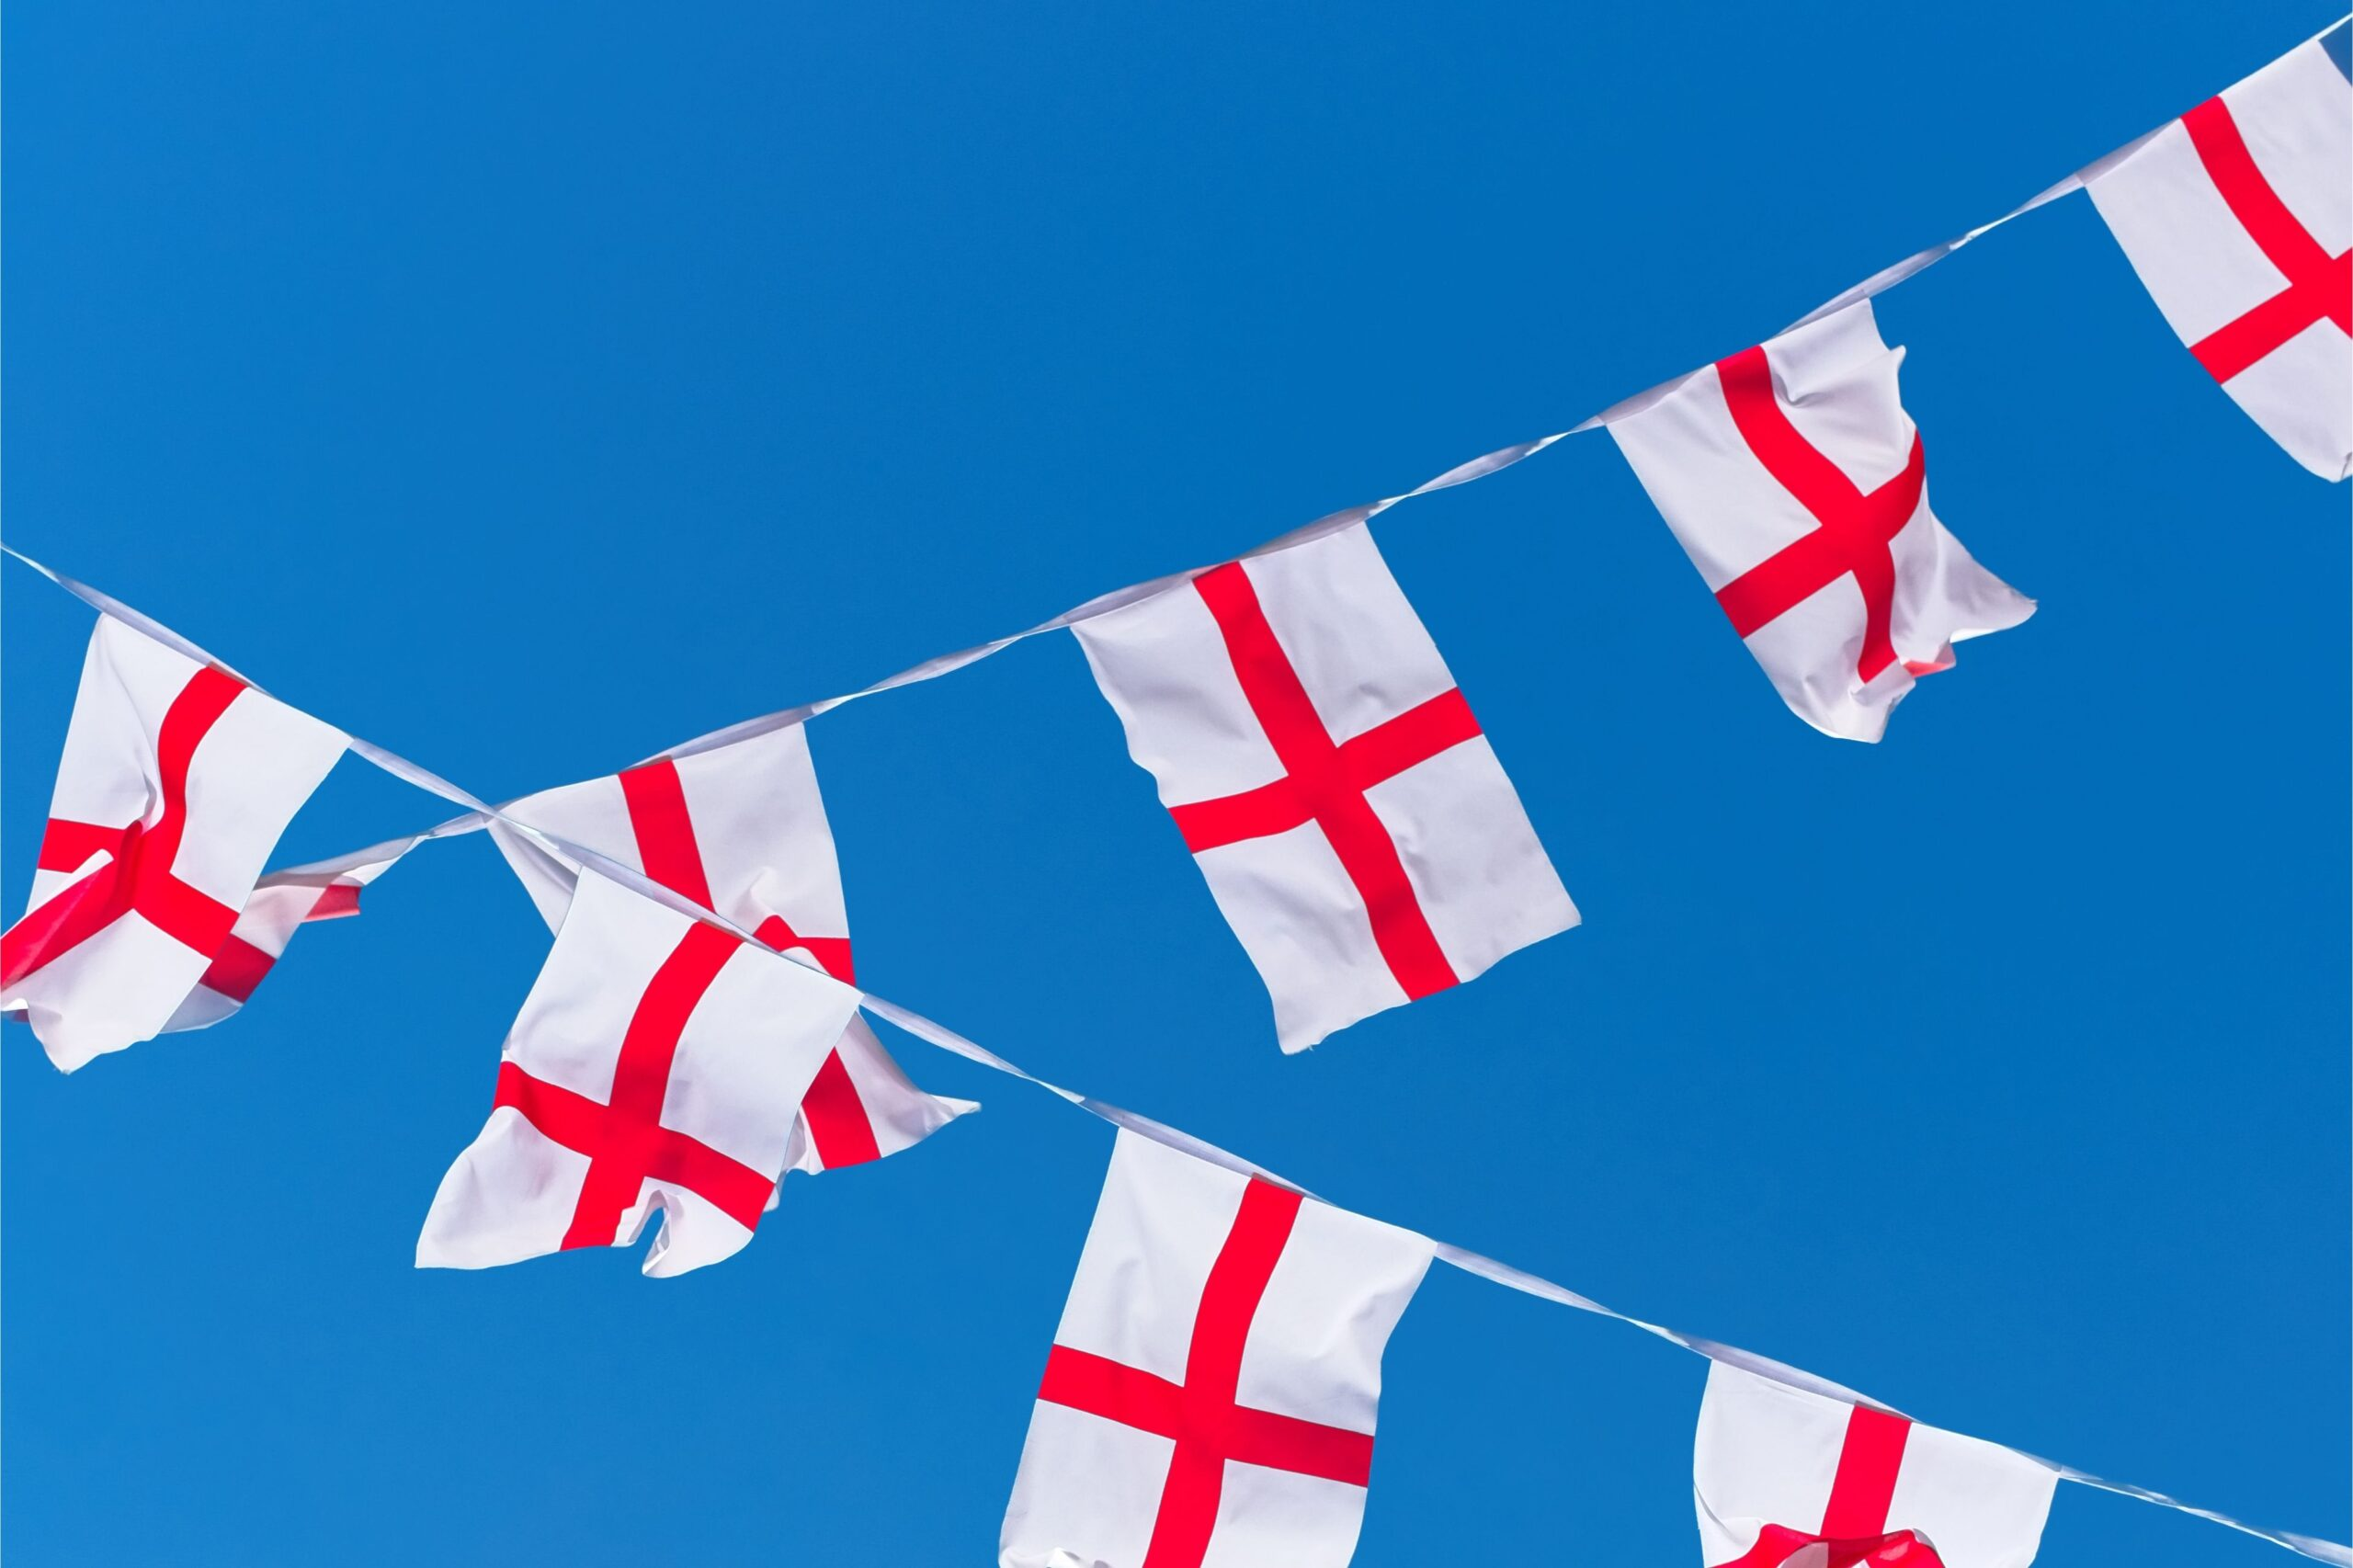 St George's Day not celebrated equally, poll finds